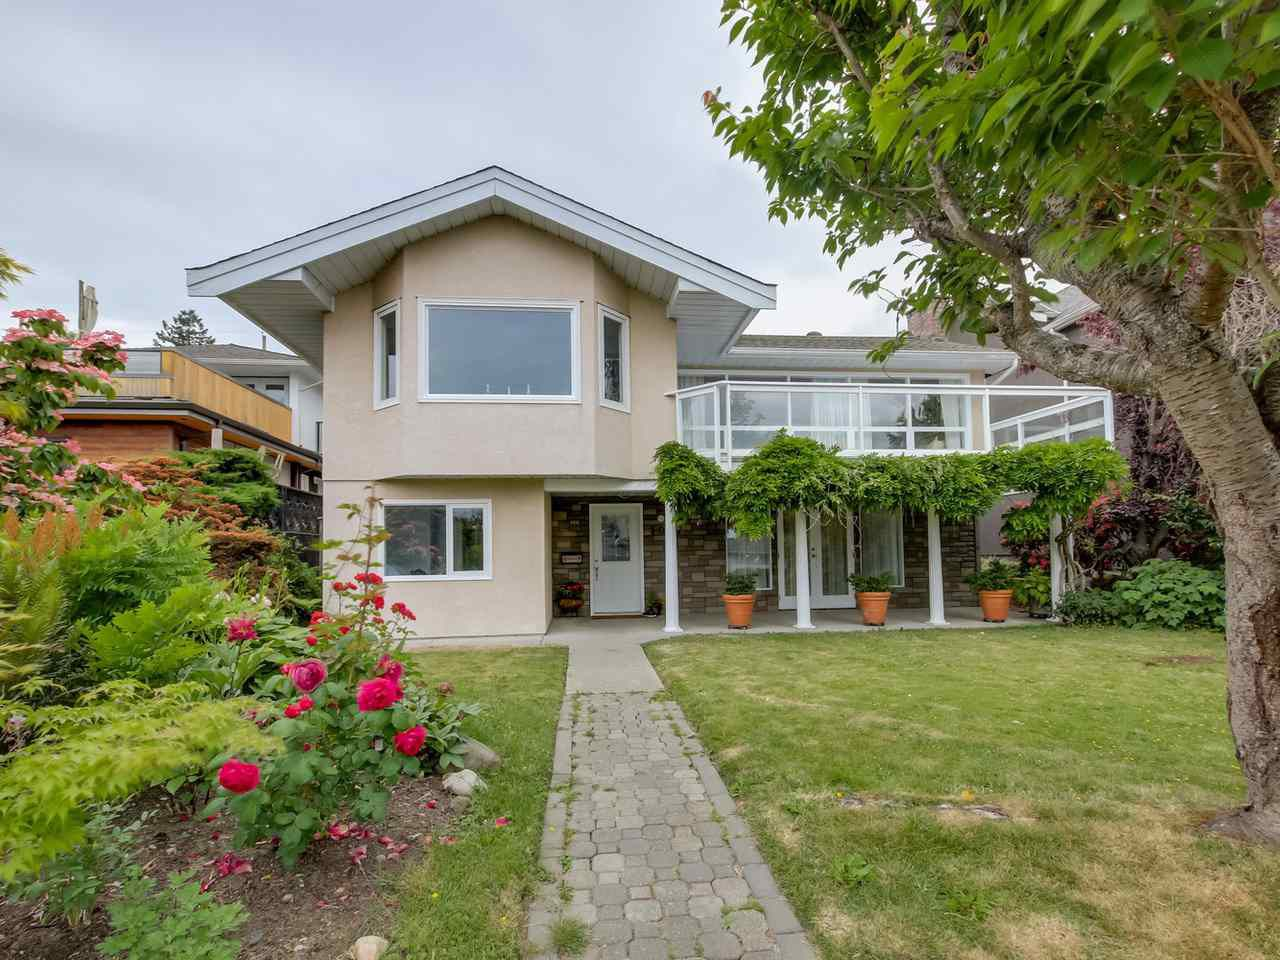 Photo 13: Photos: 1014 CALVERHALL Street in North Vancouver: Calverhall House for sale : MLS®# R2090205